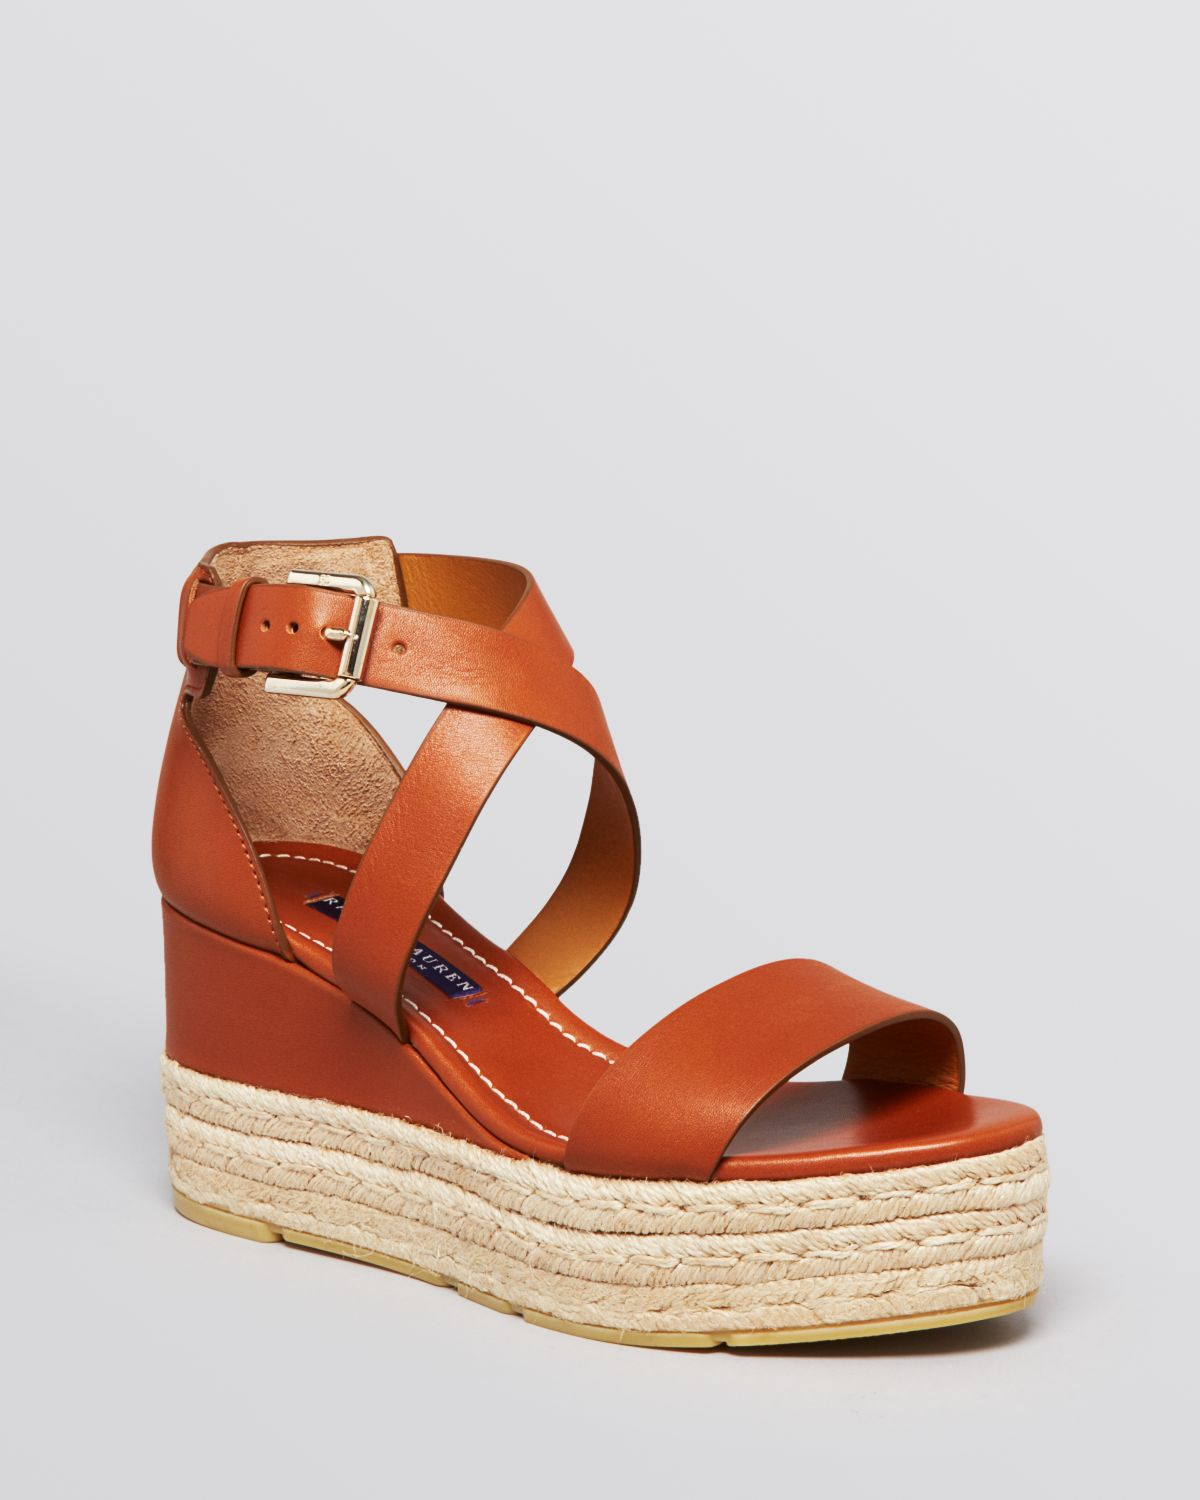 ralph lauren collection platform espadrille wedge sandals esabel in brown lyst. Black Bedroom Furniture Sets. Home Design Ideas